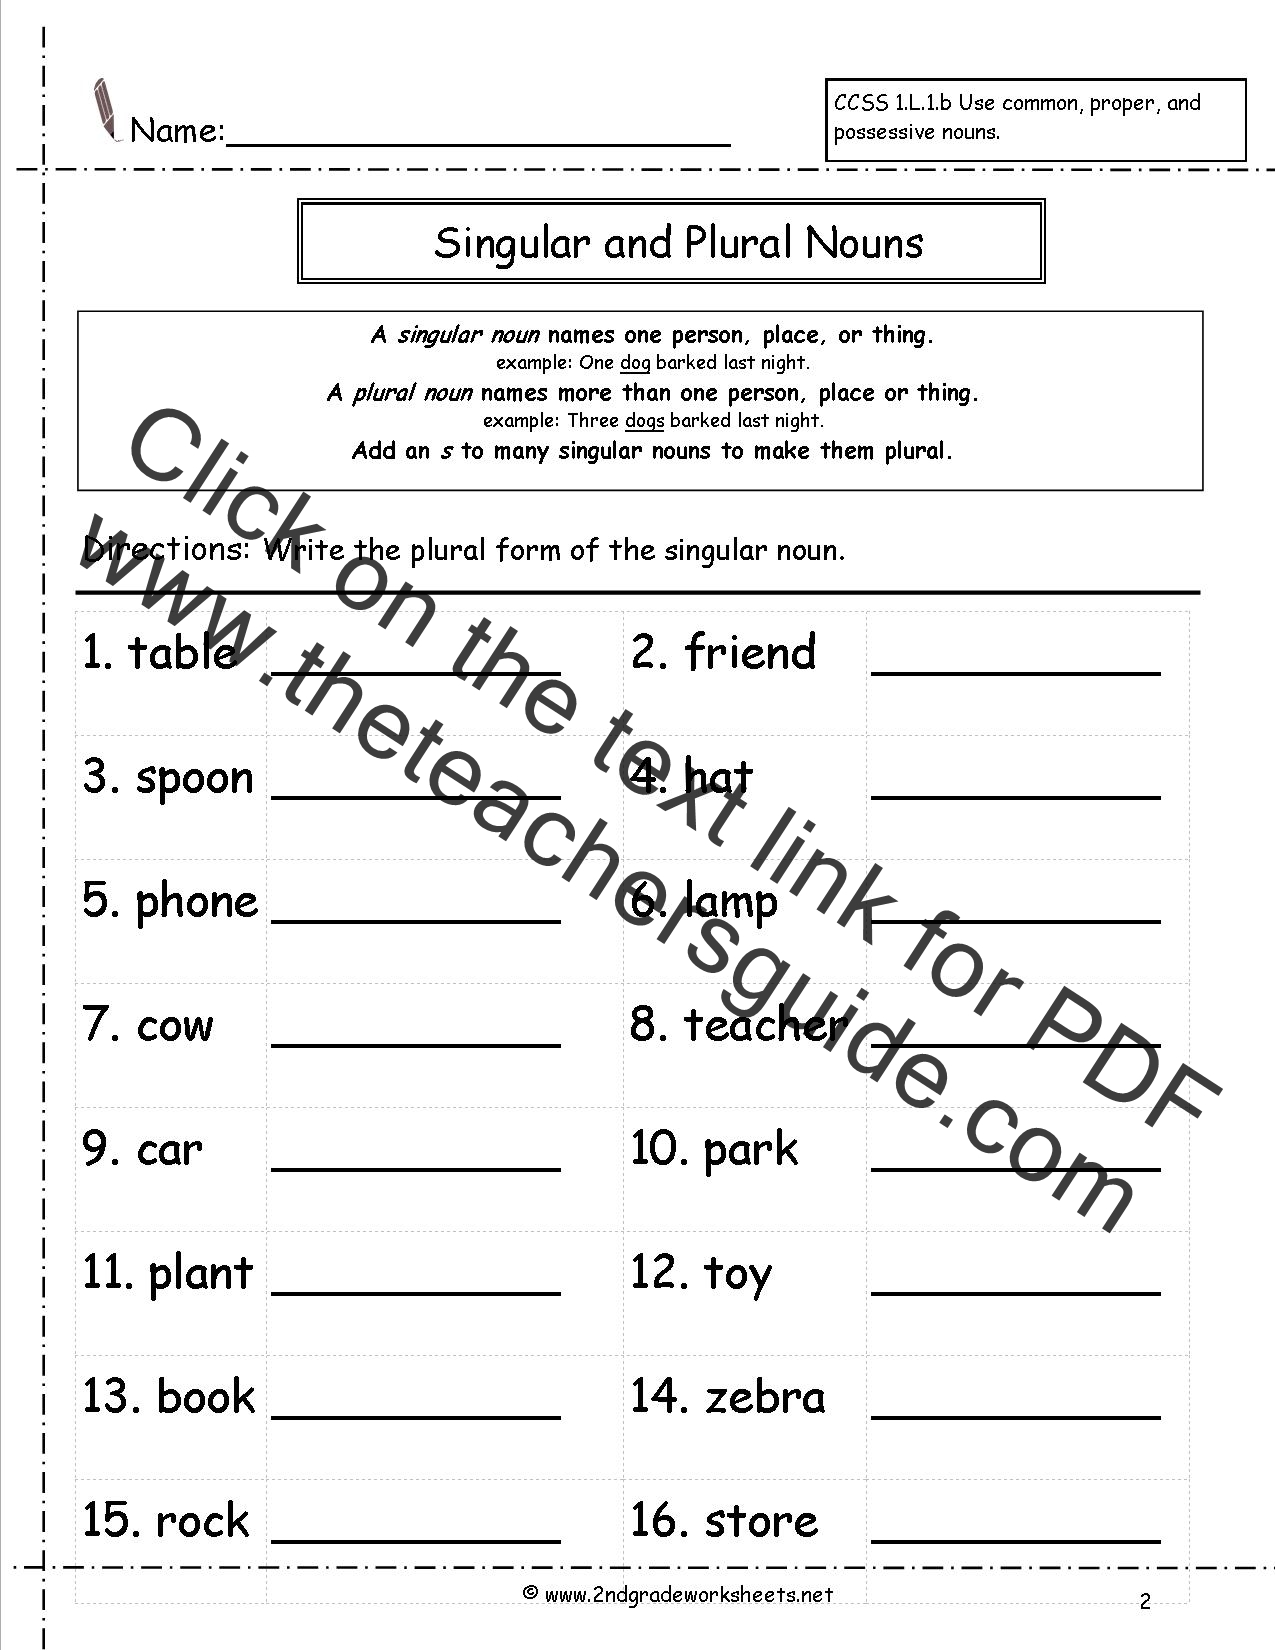 Singular and Plural Nouns Worksheets – Irregular Plural Noun Worksheets